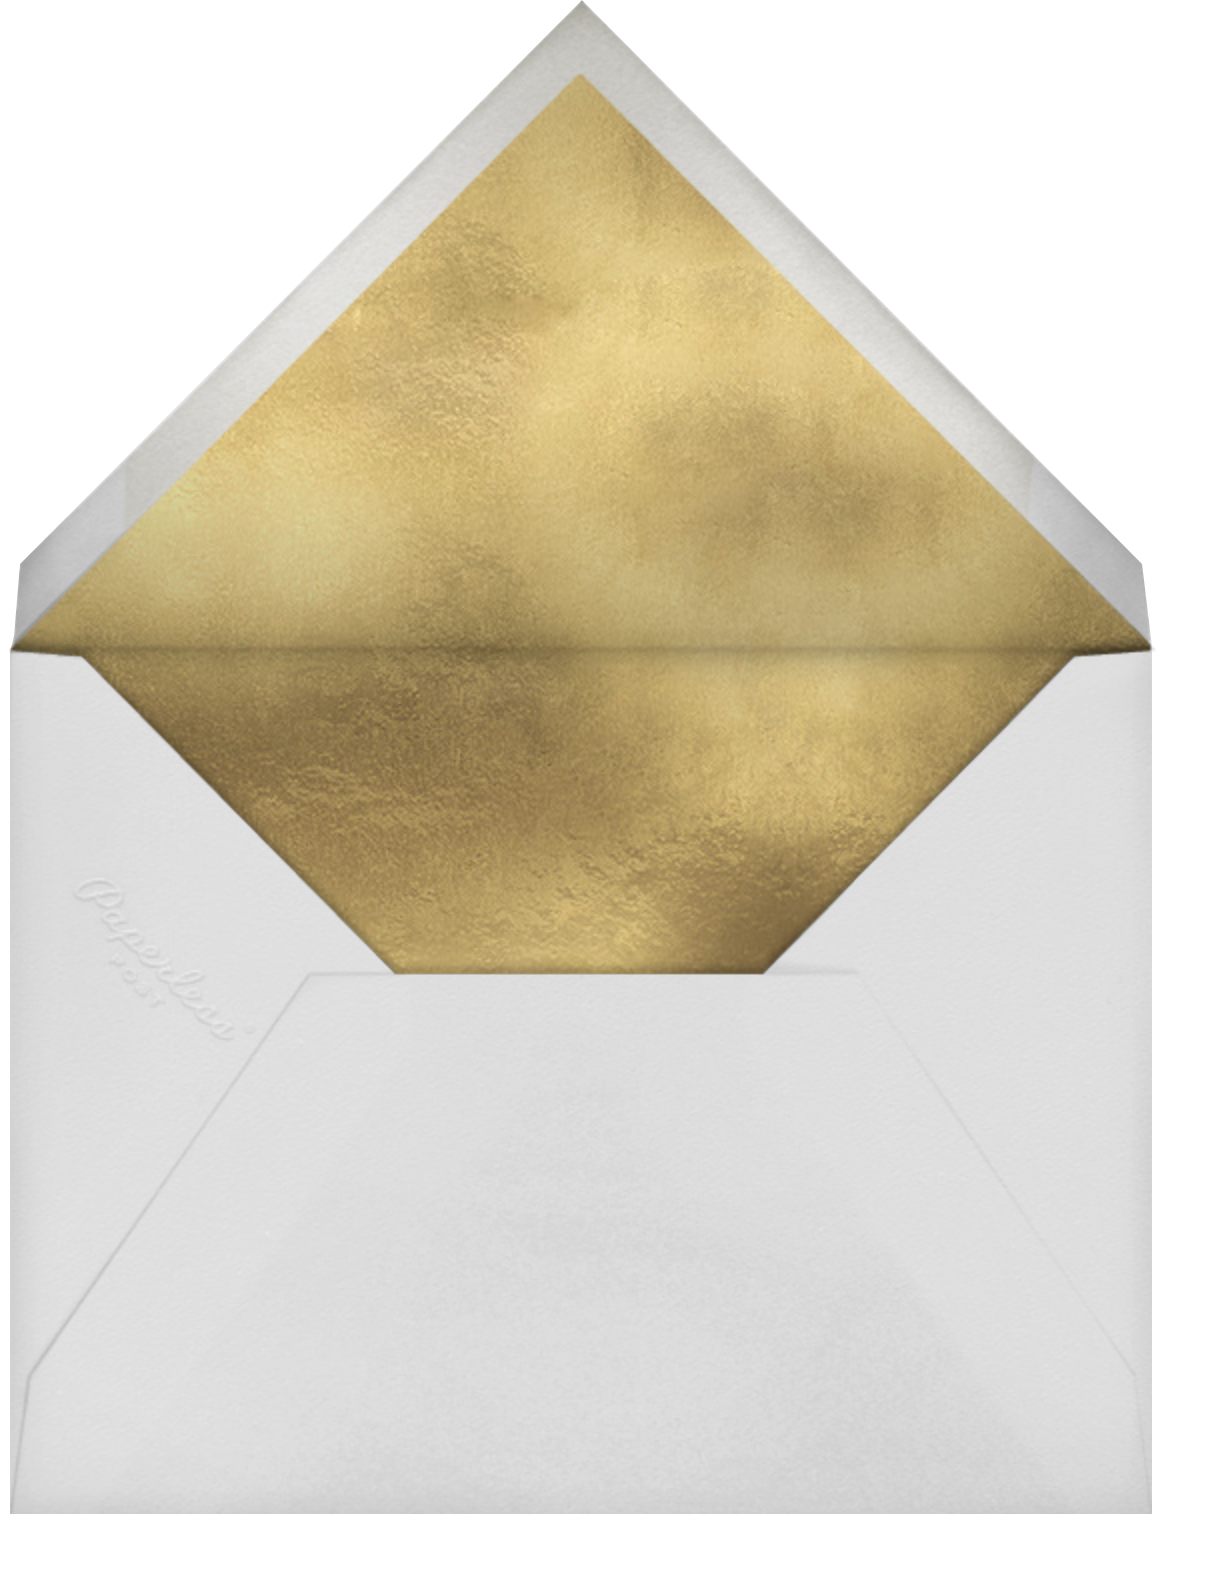 Up on the Rooftop - Greeting - Mr. Boddington's Studio - Holiday cards - envelope back